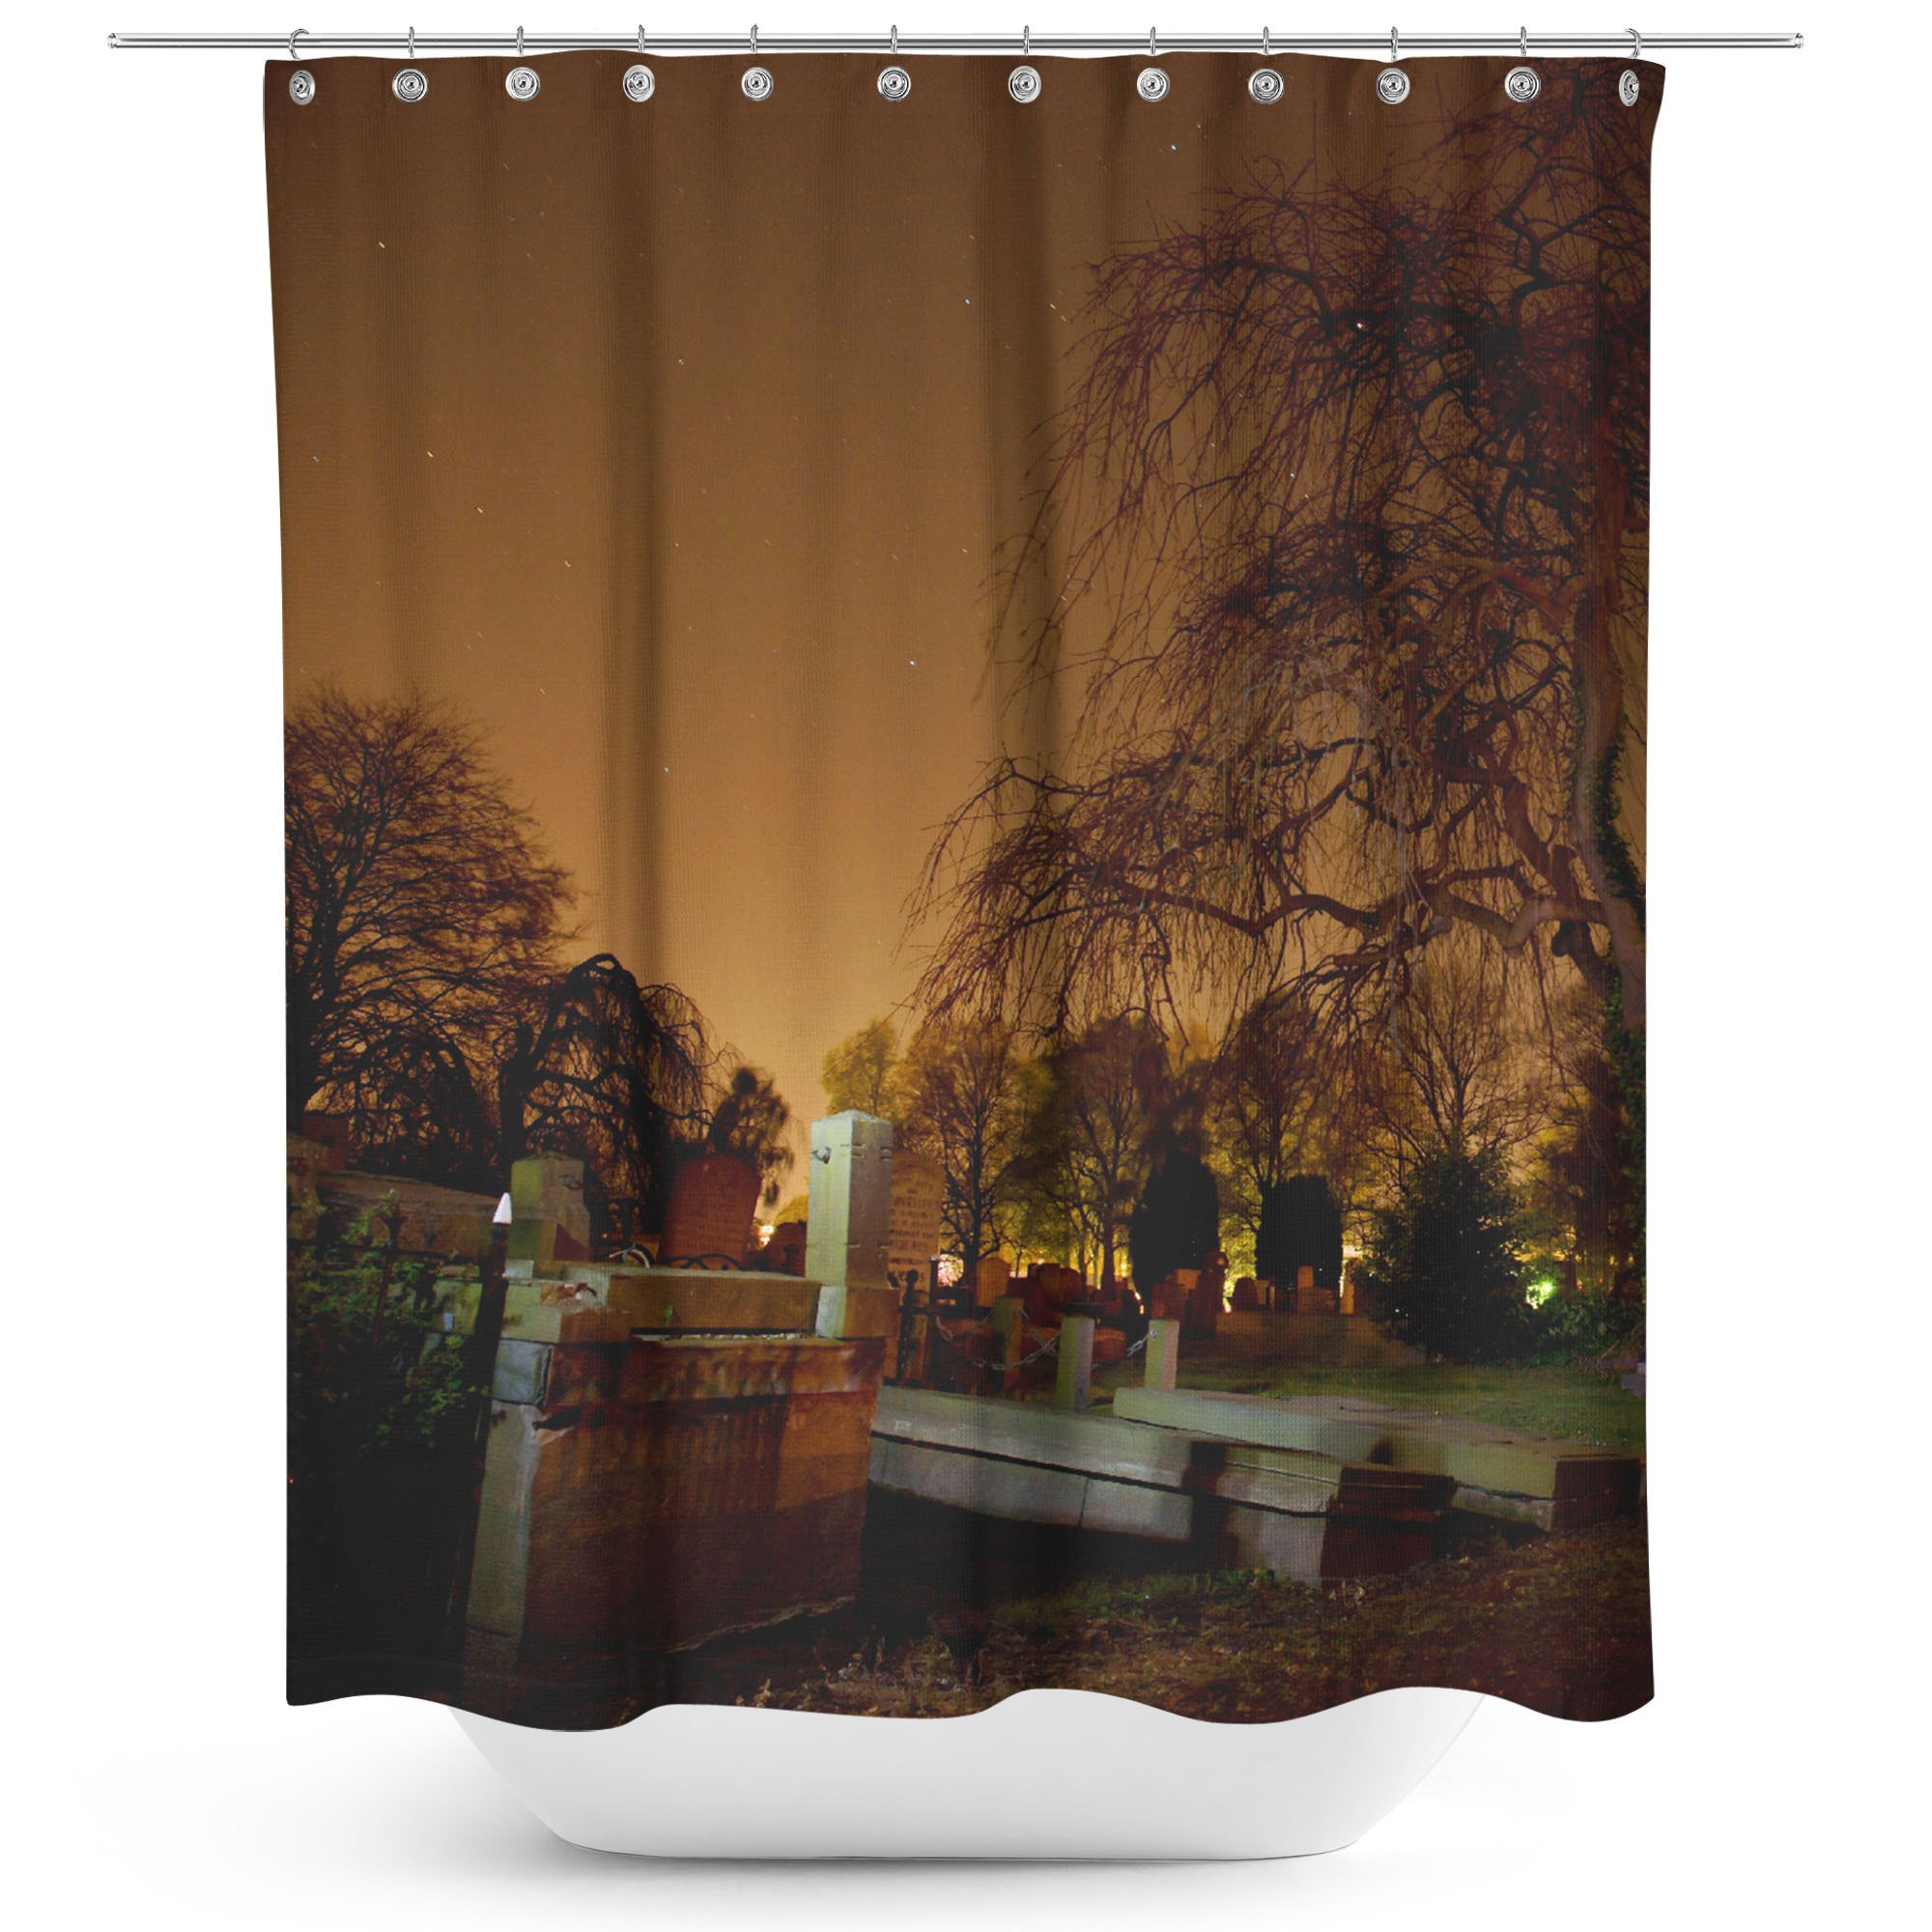 Westlake Art - Haunted Sky - Fabric Printed Shower Curtain - Picture Photography Waterproof Mildew Resistant Hook Bathroom - Machine Washable 71x74 Inch (2D9FB)